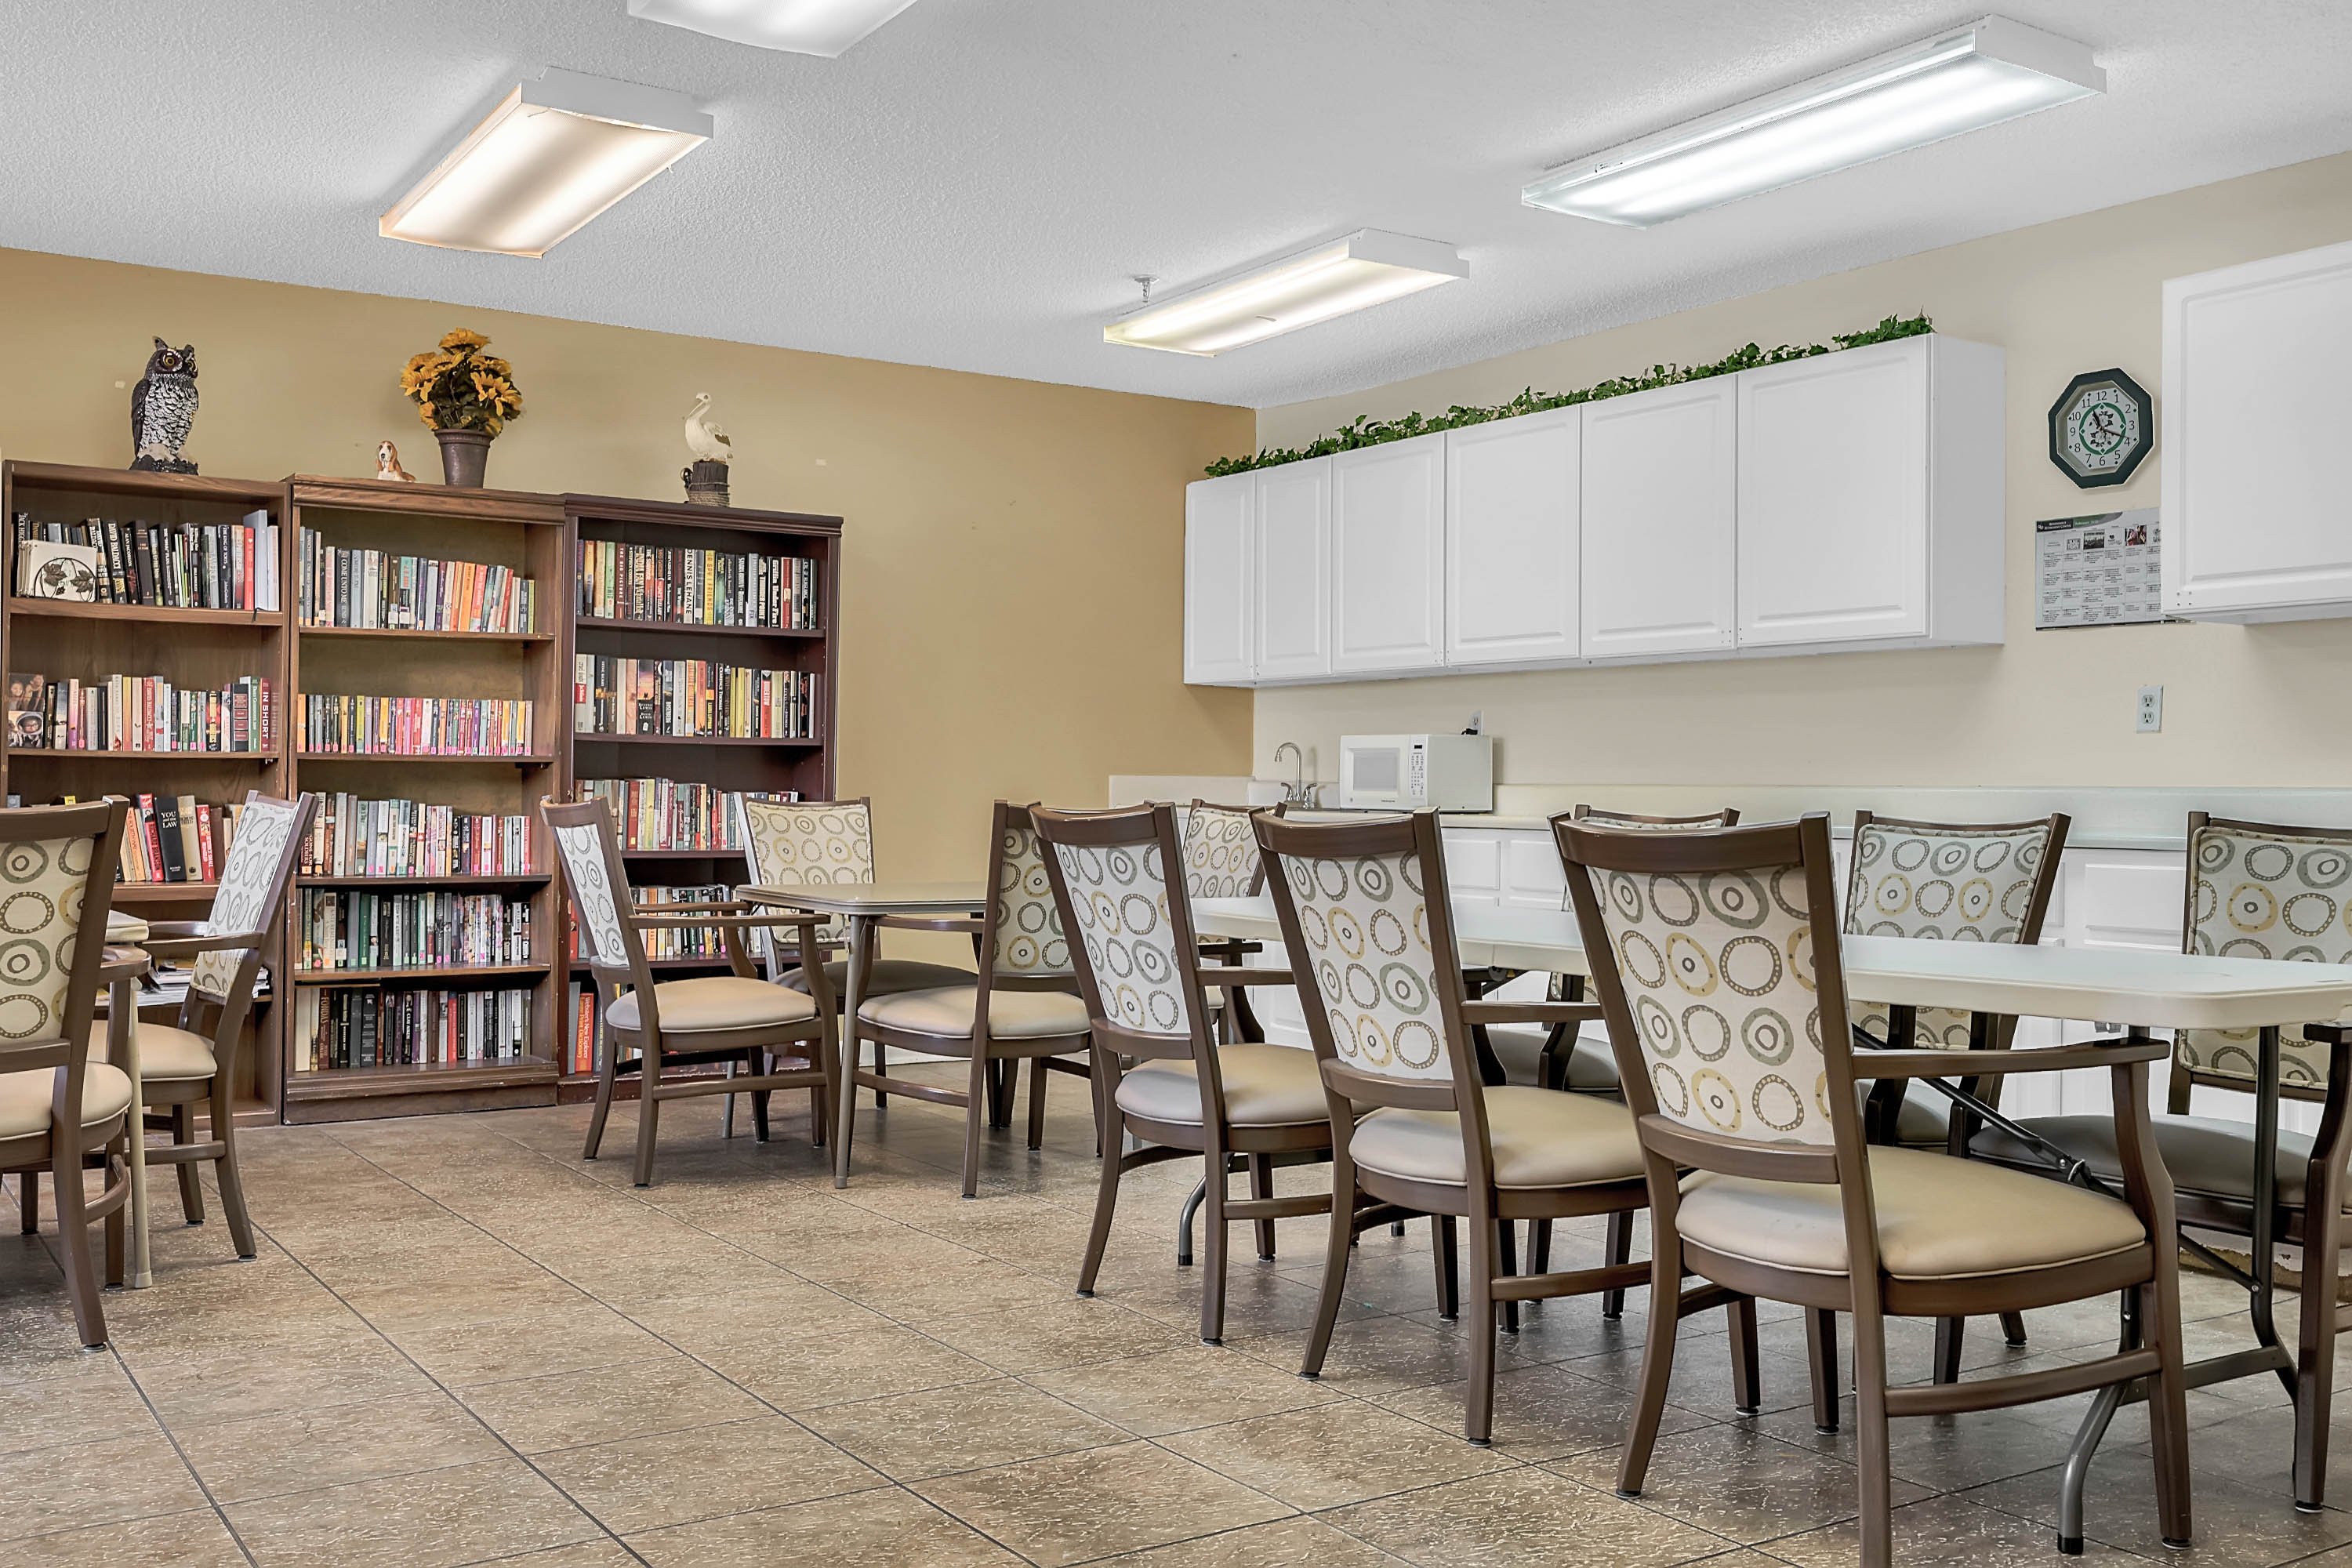 A Common Room at Renaissance Retirement Center in Sanford, Florida